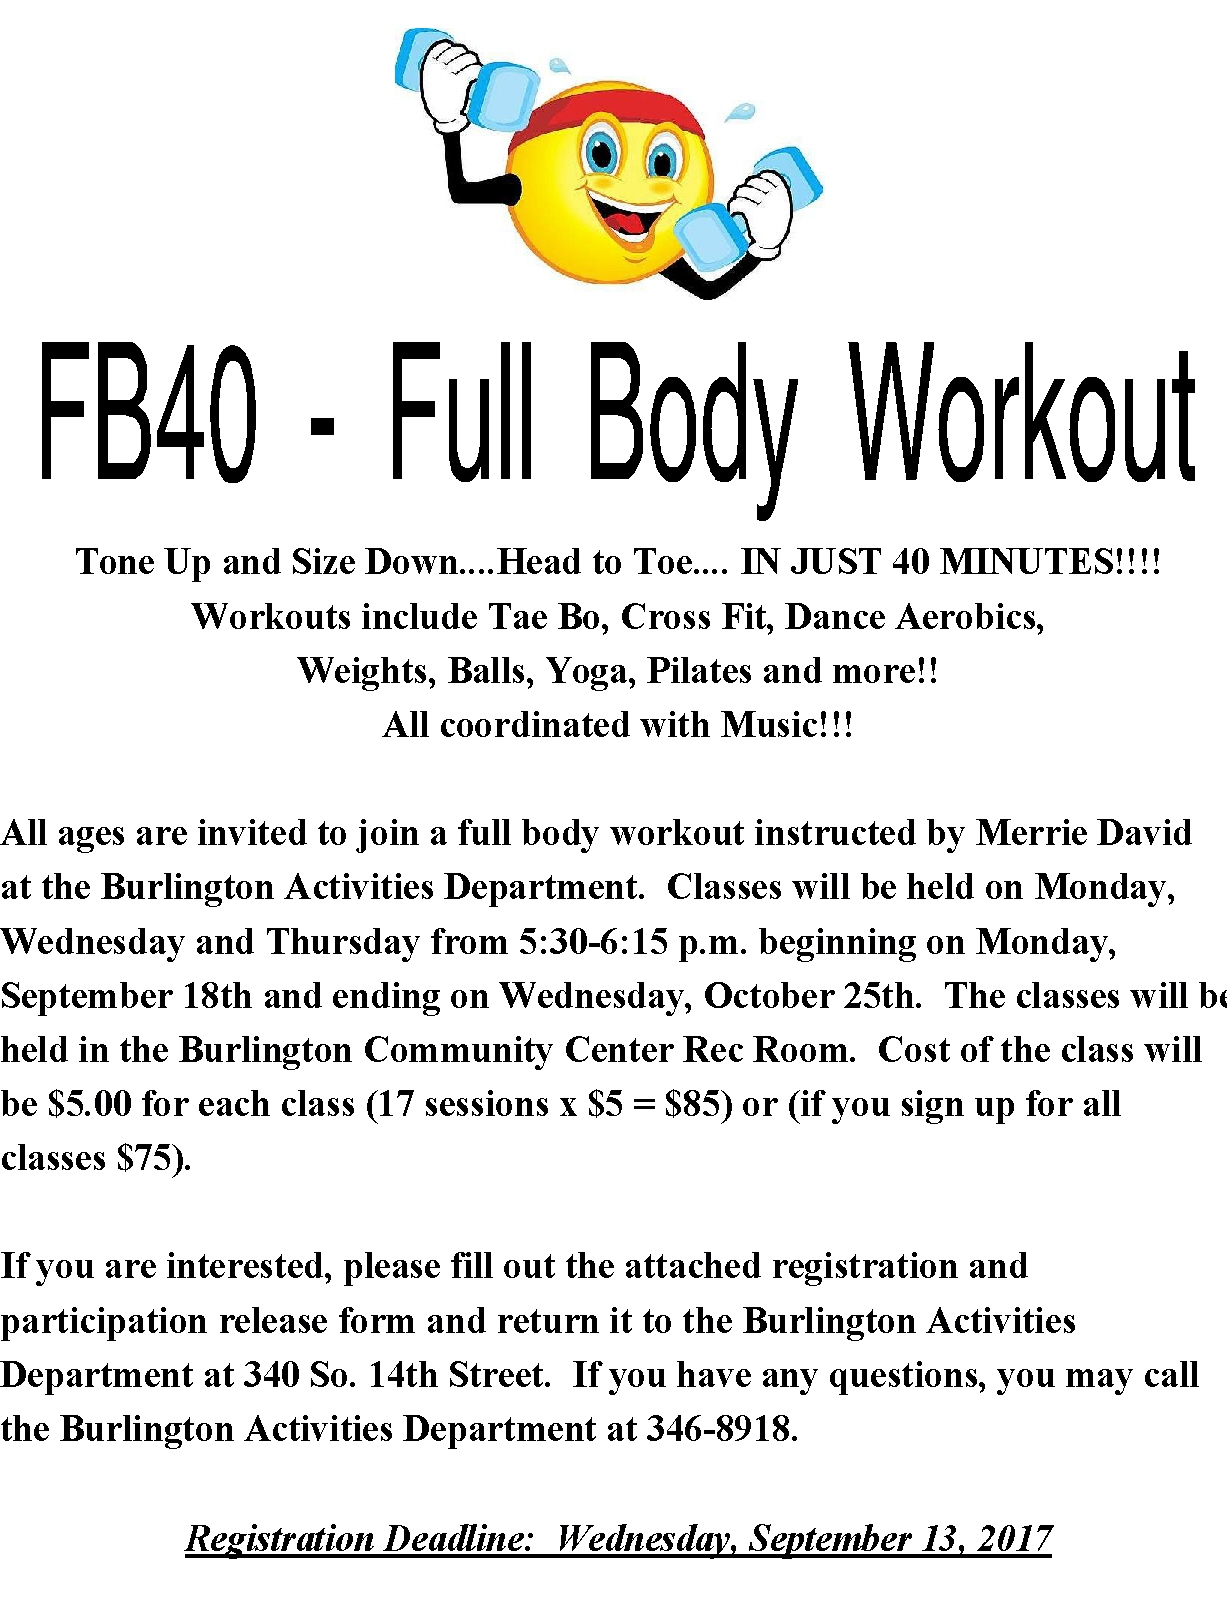 FB40 Full Body Workout Flyer